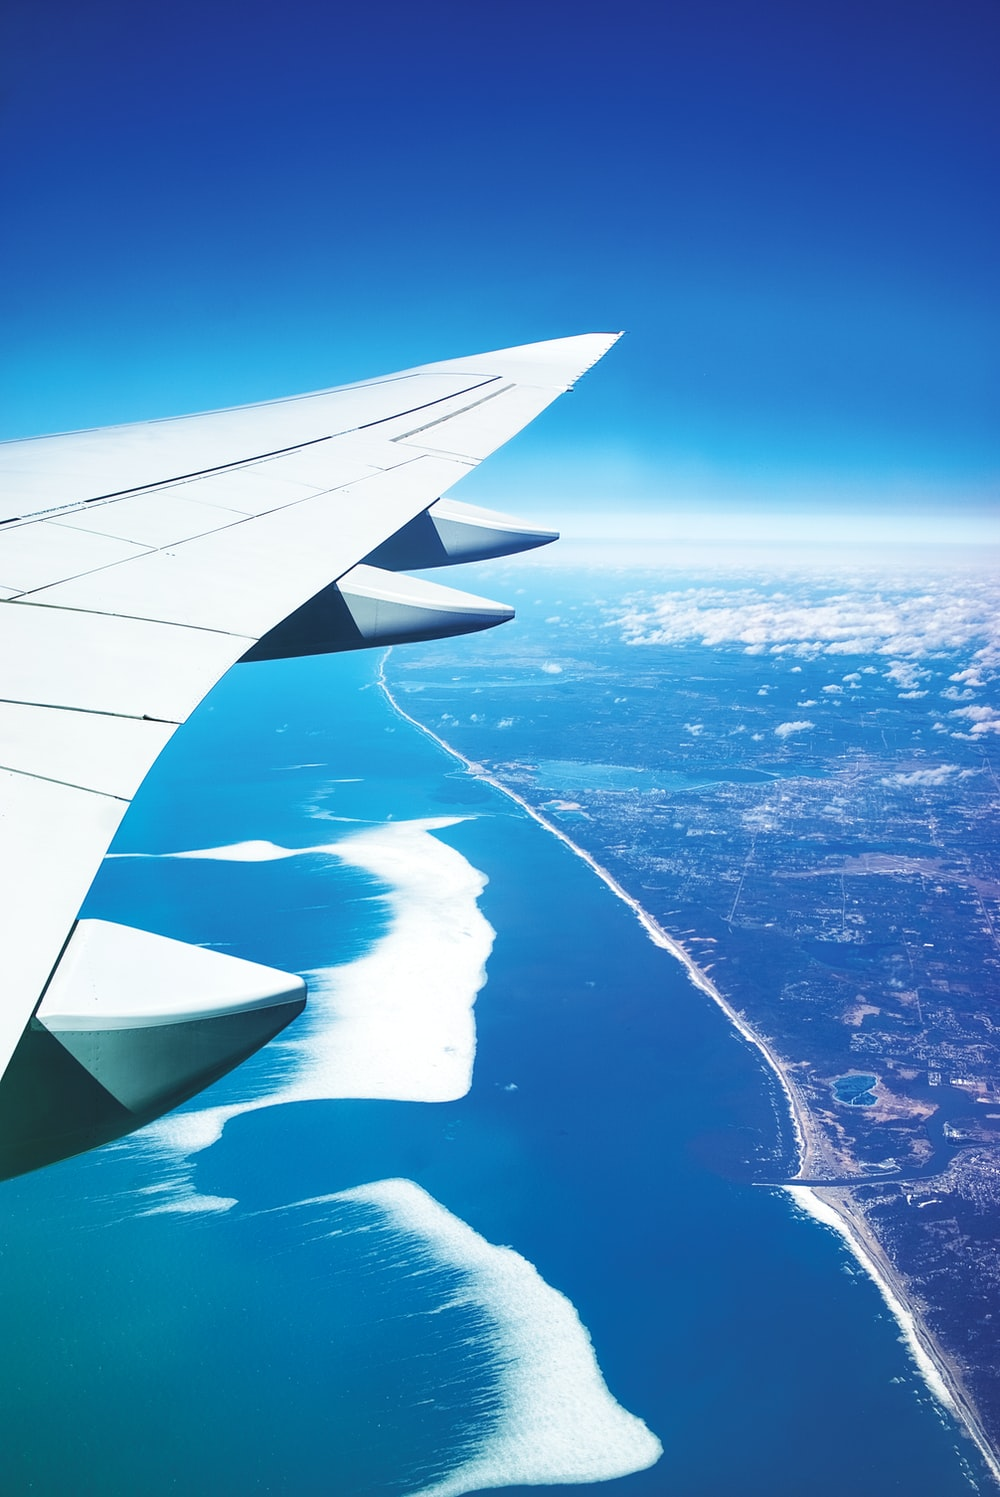 aerial photo of airplane wings during daytime